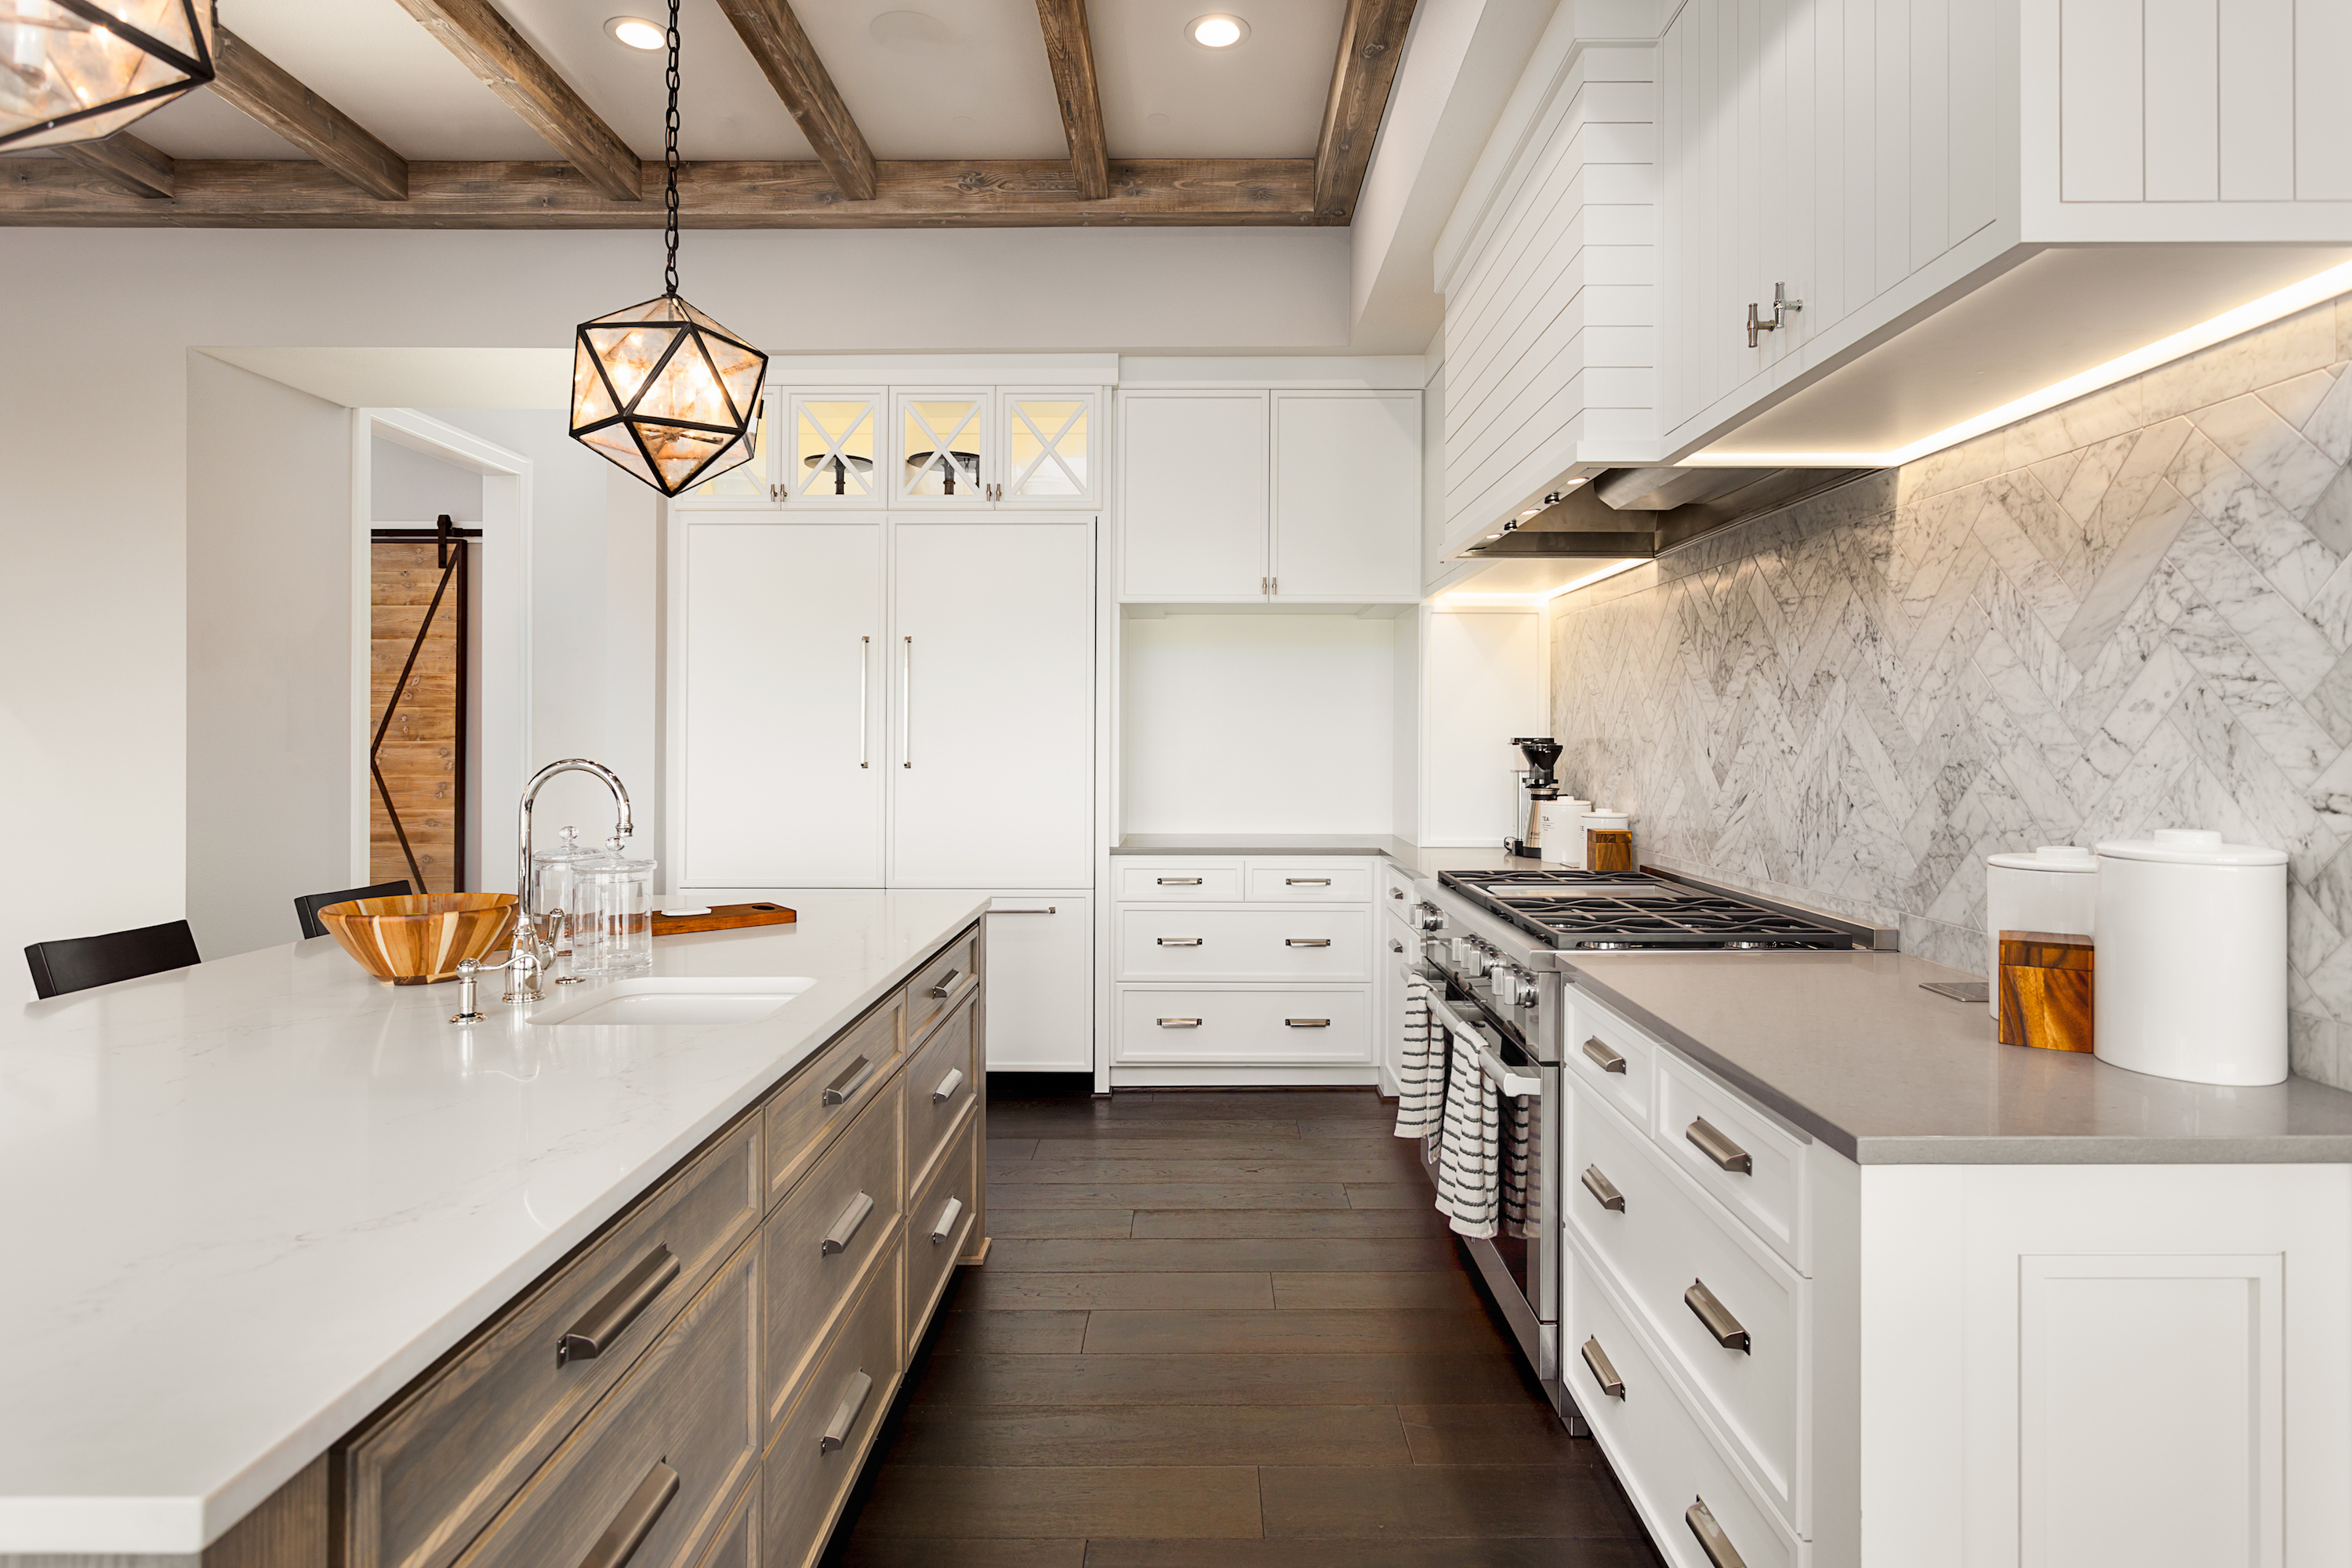 Call Select Floors For Sandy Springs Kitchen Cabinet Refacing 770-218-3462